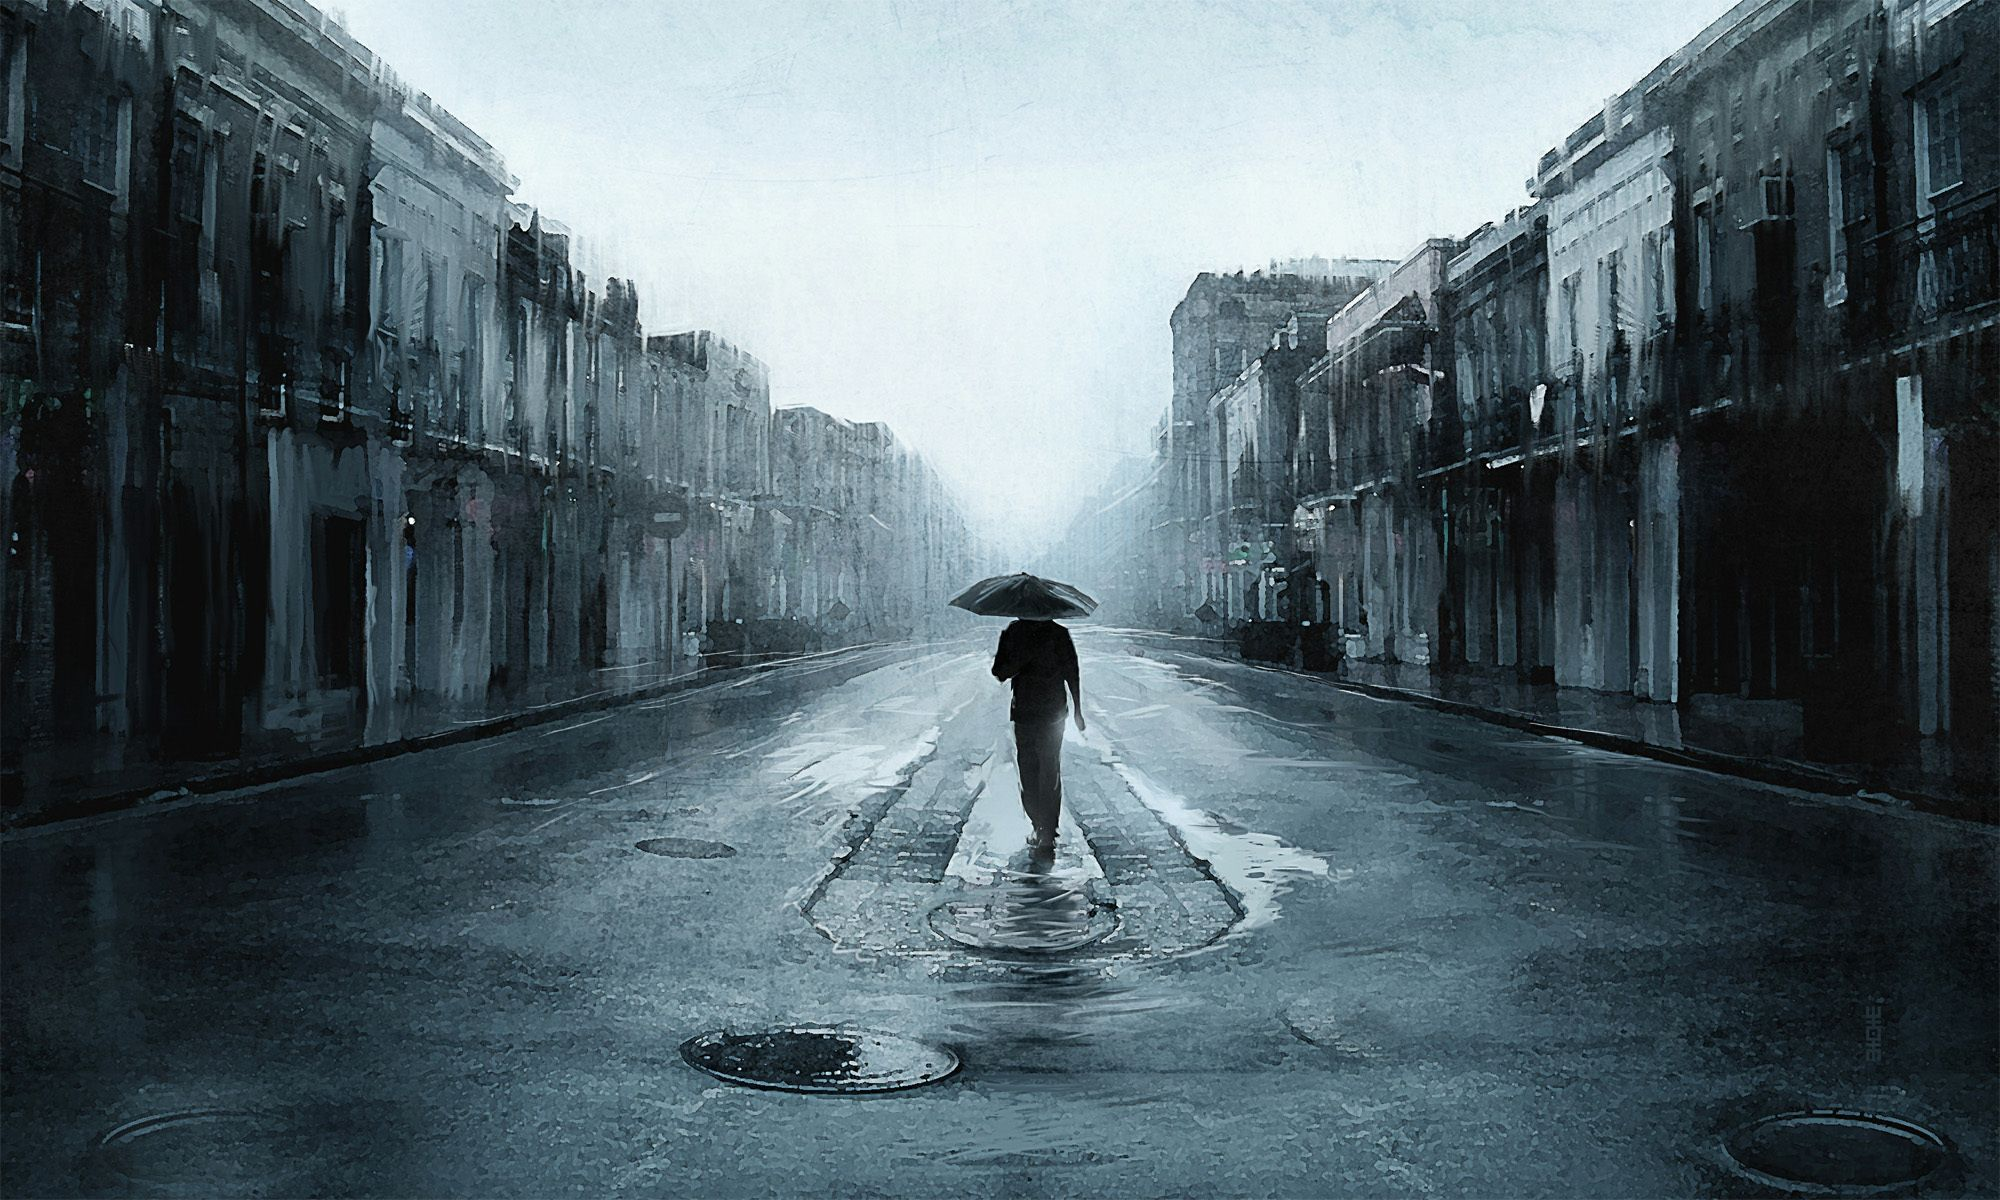 Alone Hd Wallpapers Hd Wallpapers Inn Rainy Street Rain Wallpapers Rain Painting